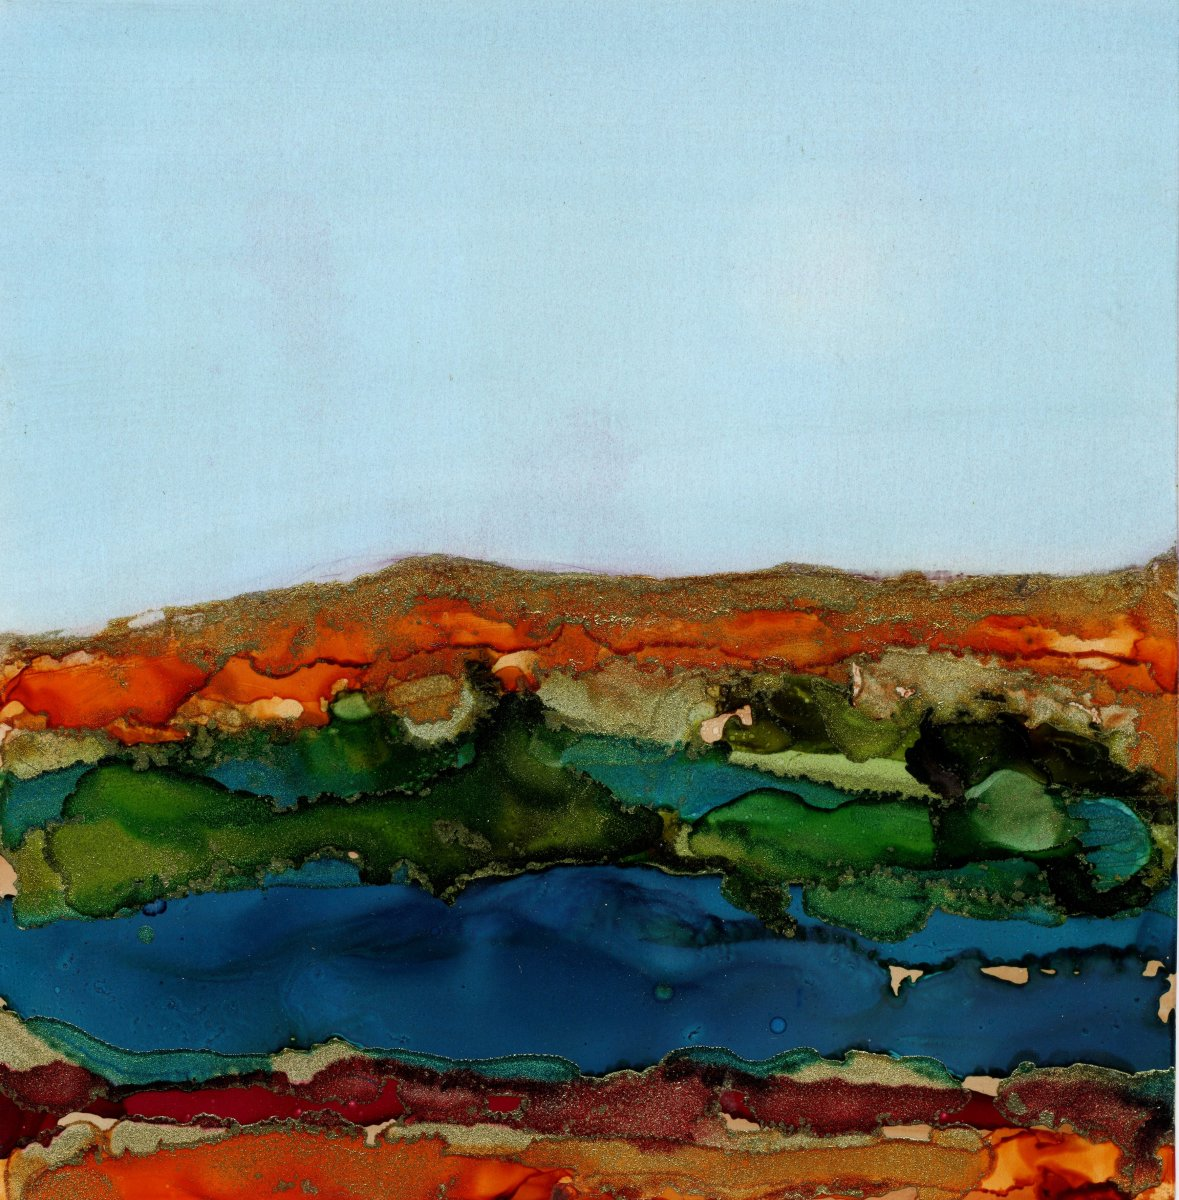 African Dreamscapes: Landscape with River by Mari O'Brien